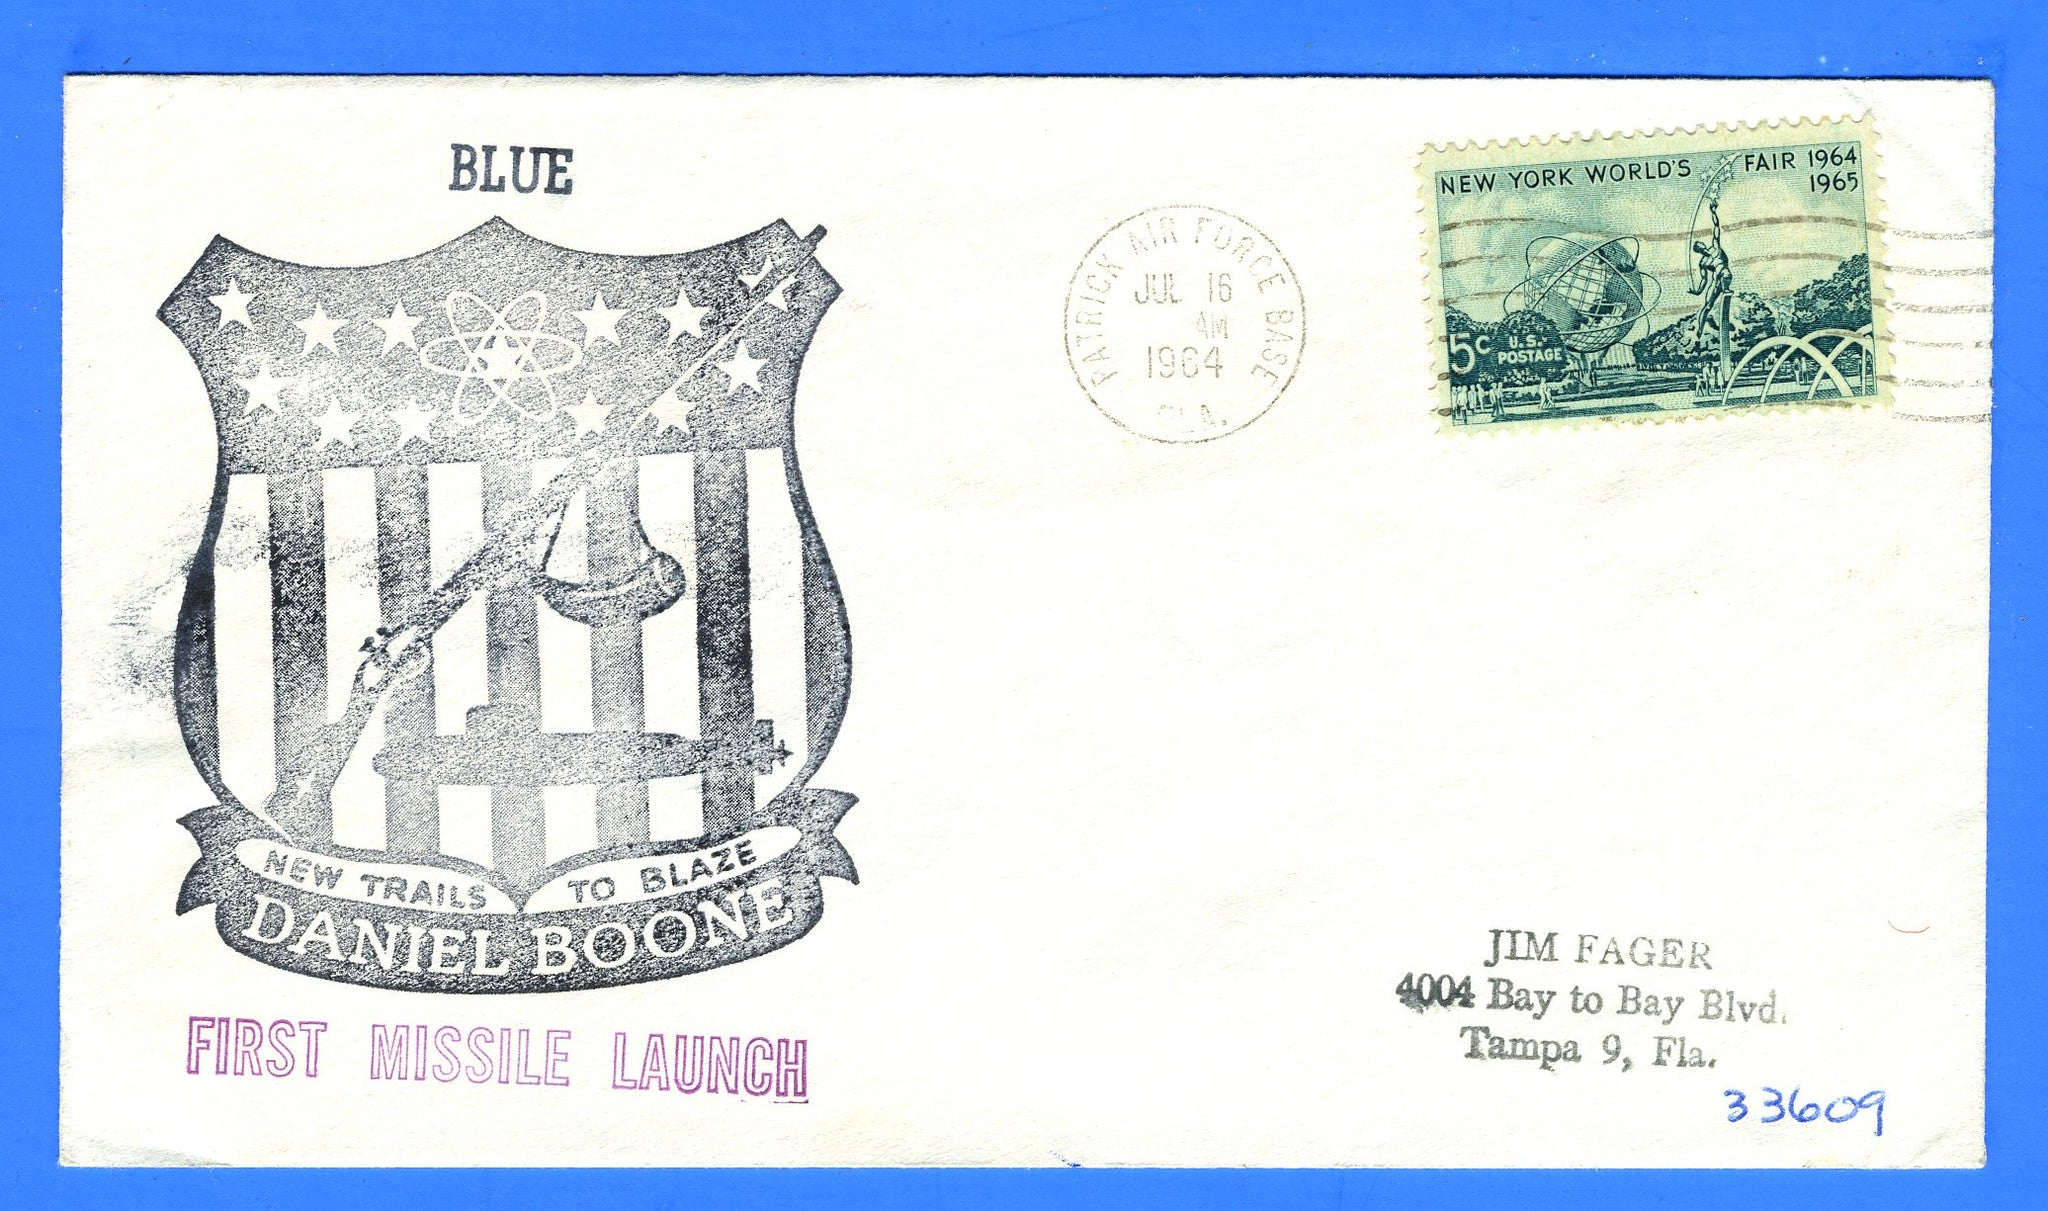 USS Daniel Boone SSBN-629 First Missile Launch (Blue) July 16, 1964